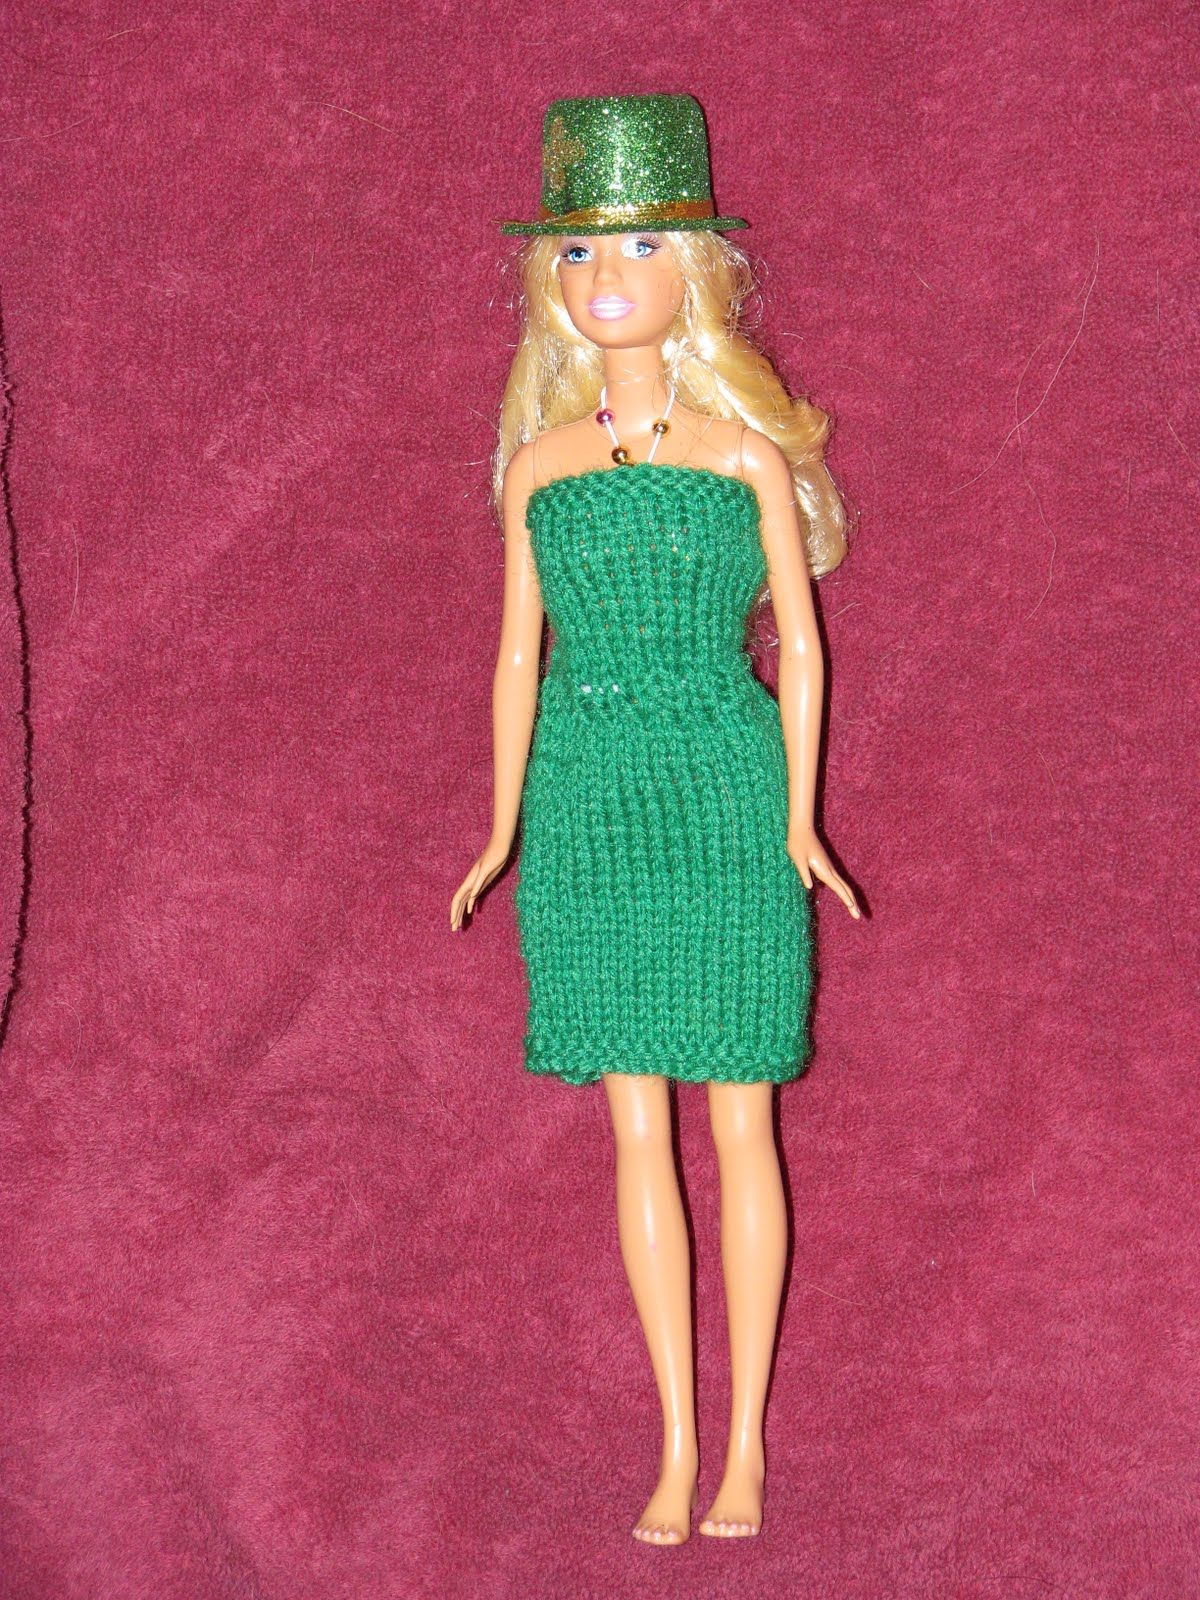 Barbie Knitting Patterns : Craft Attic Resources: Barbie and Fashion Doll Free Knitting Patterns